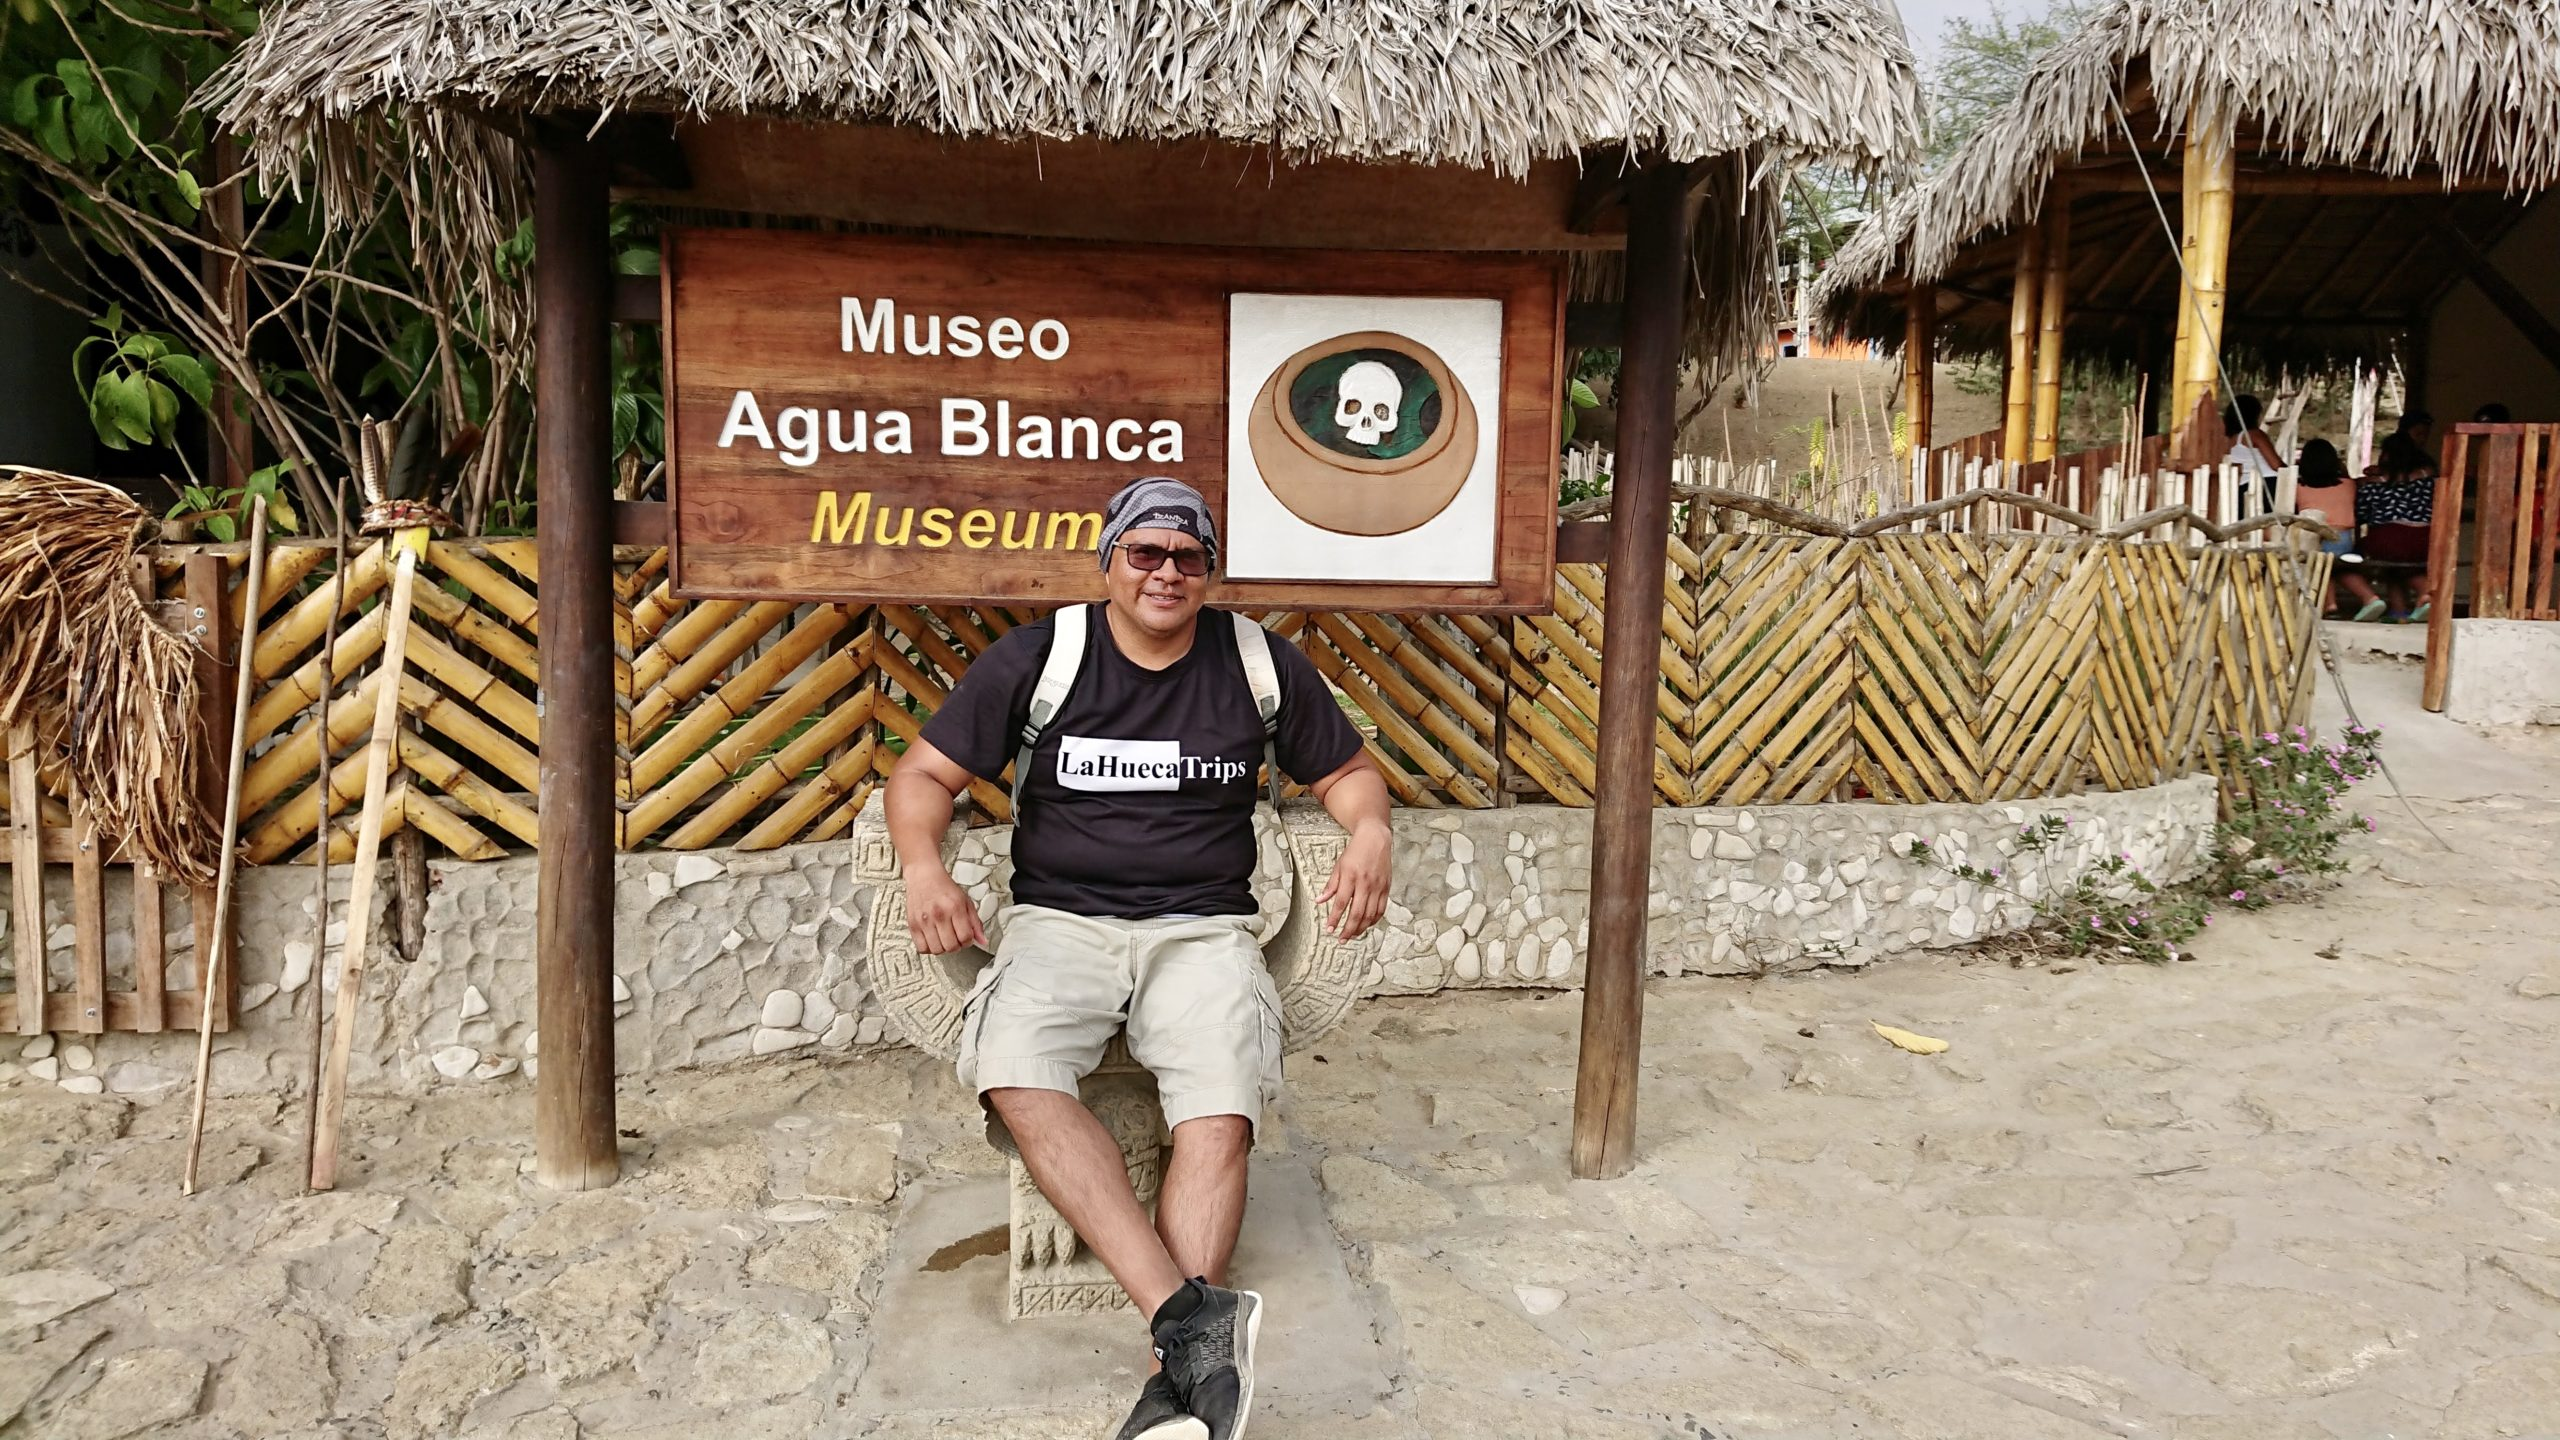 Agua Blanca a Spa in the middle of a Dry and Tropical Forest